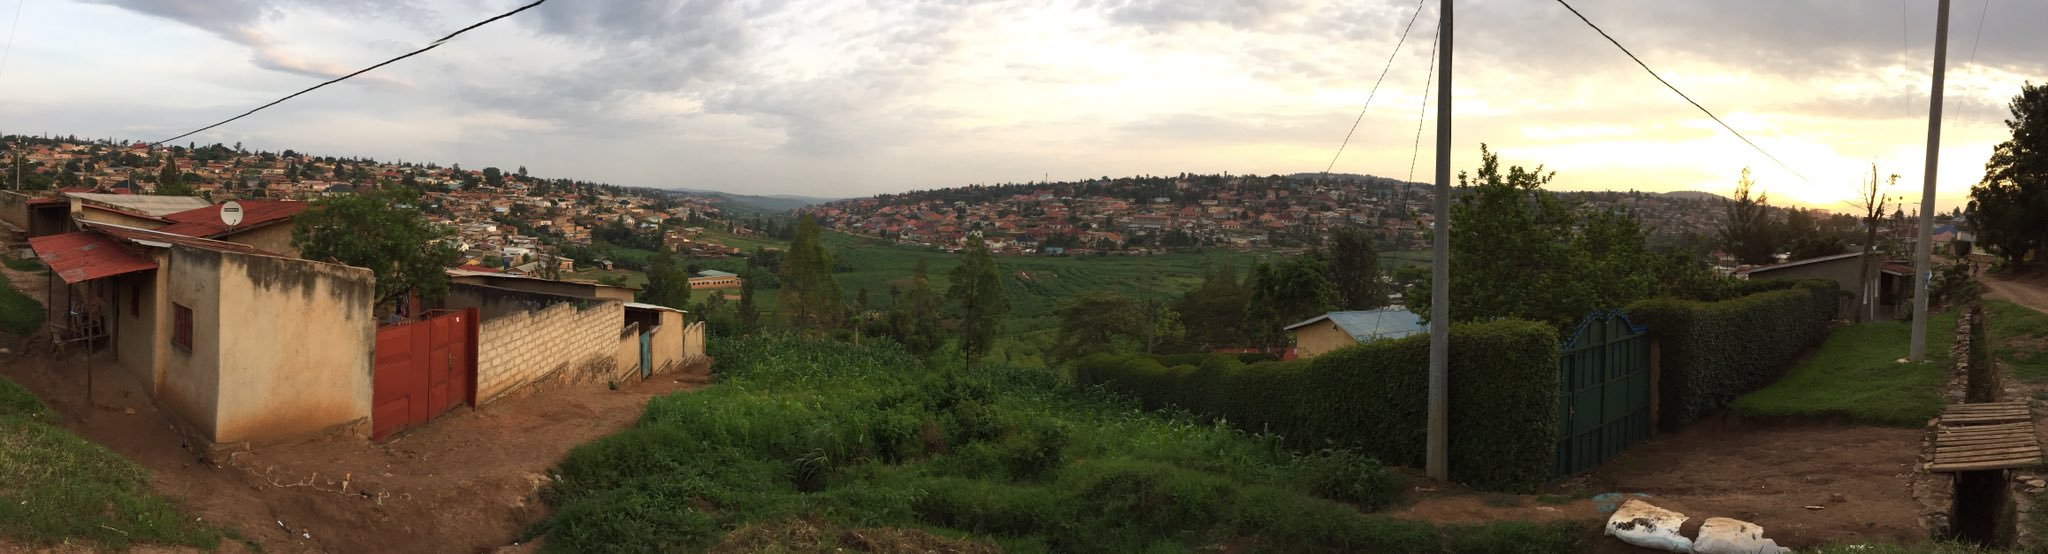 Went for a walk through Kigali suburbs just before sunset. Beautiful area. https://t.co/8pN81YO7kj